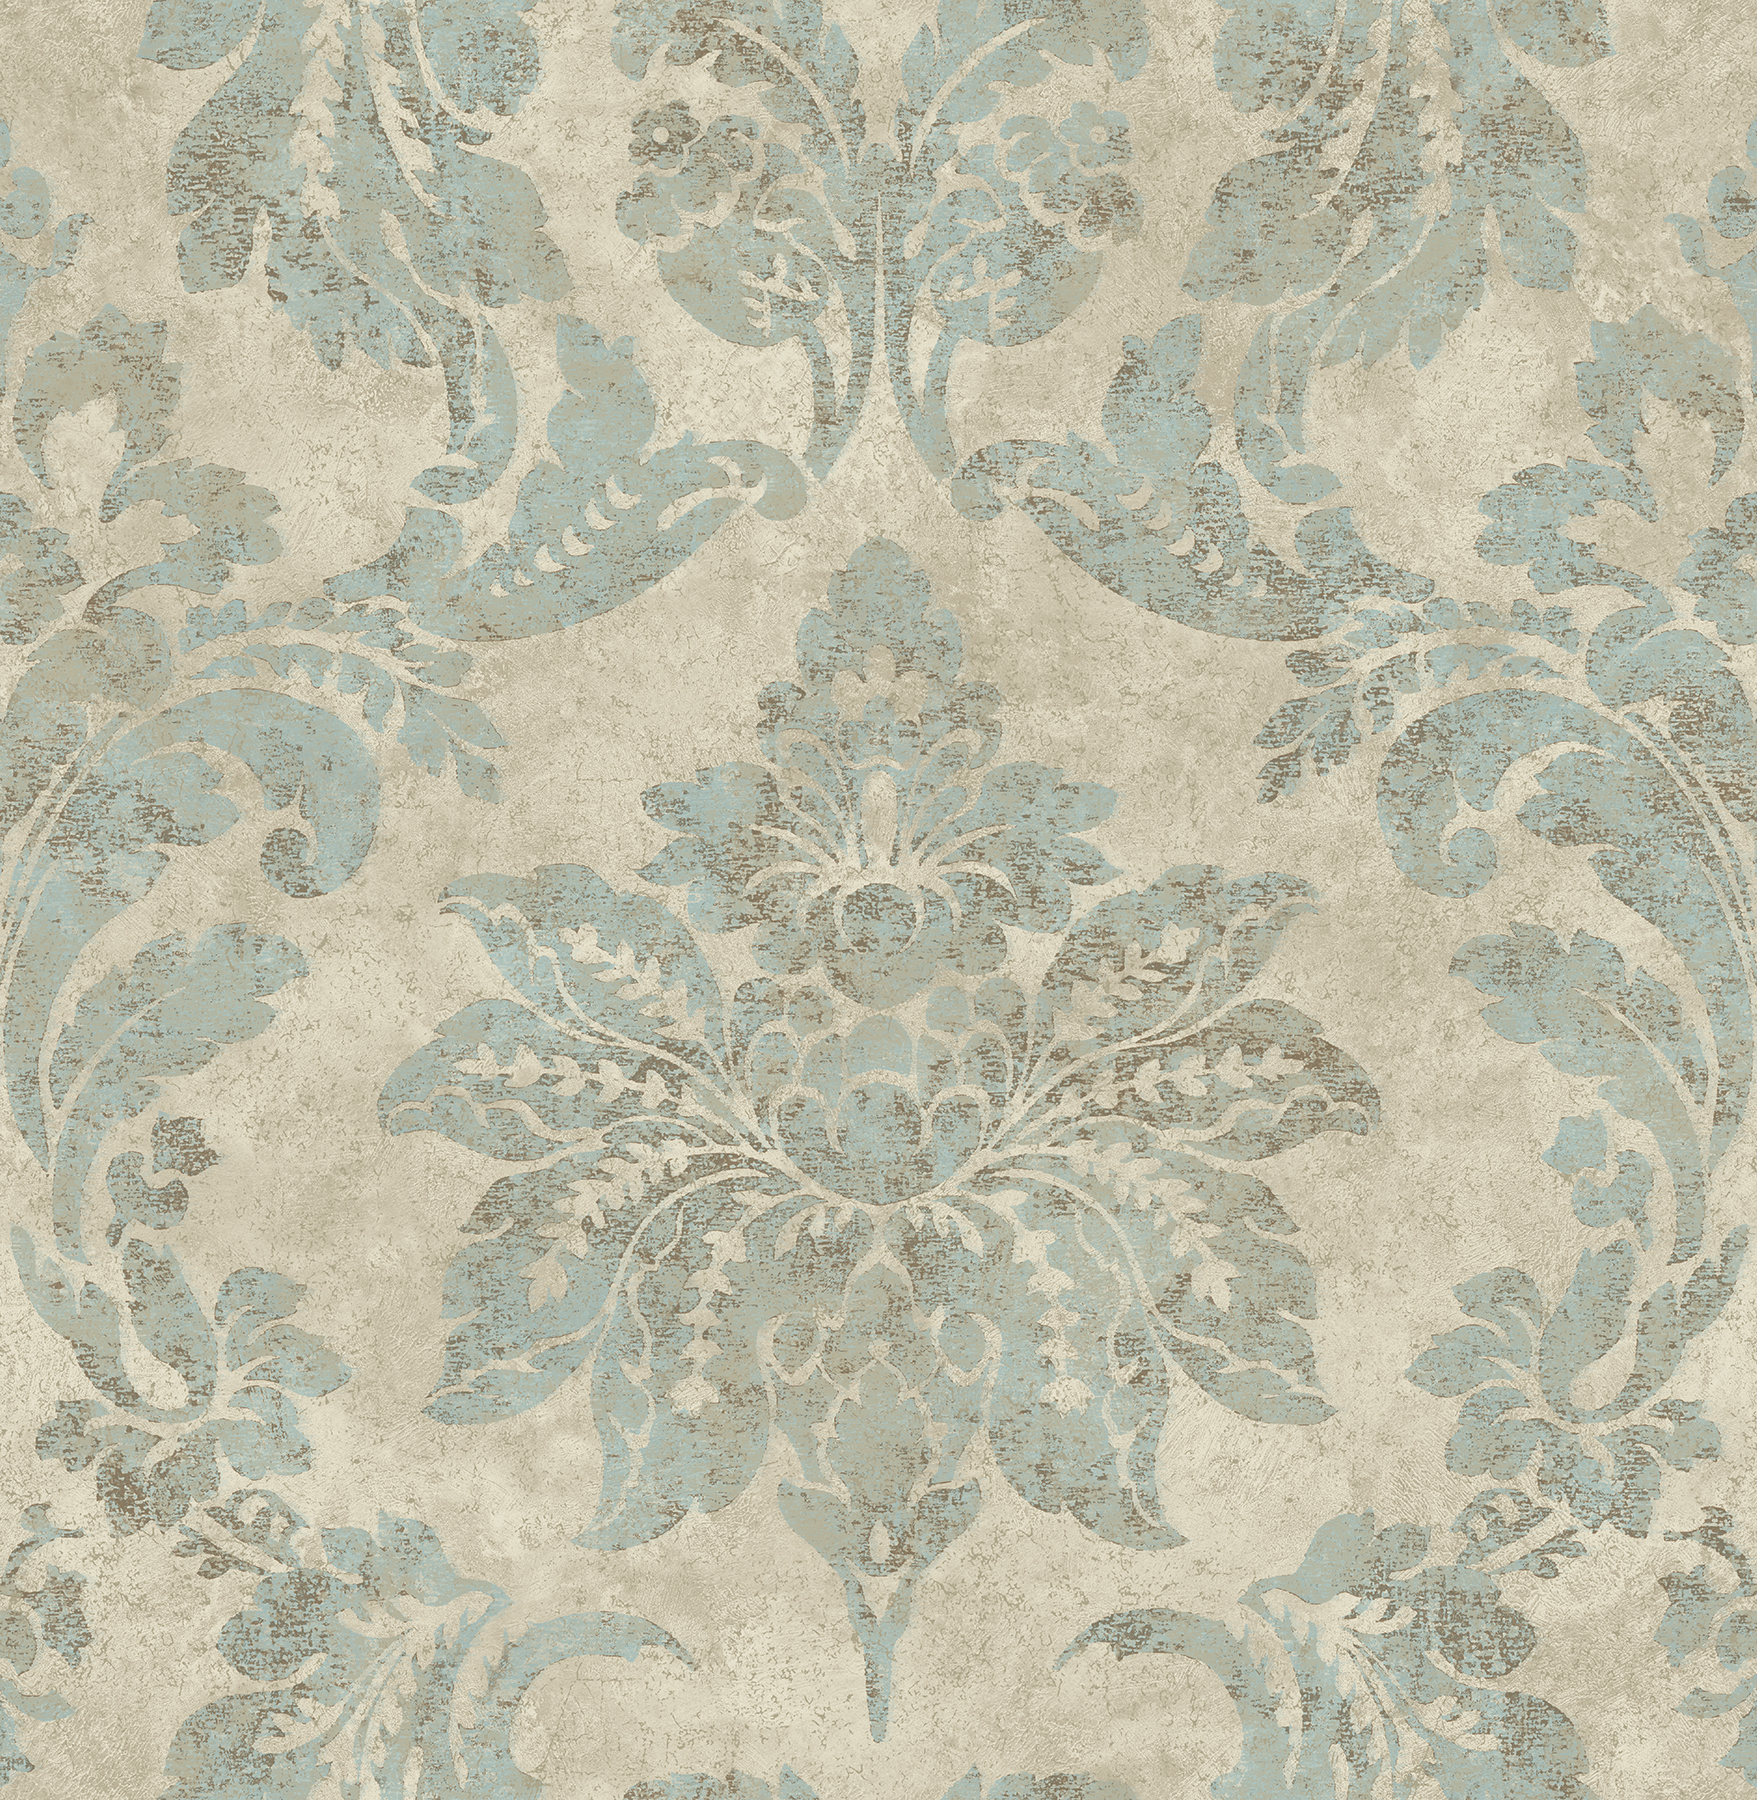 Picture of Astor Turquoise Damask Wallpaper